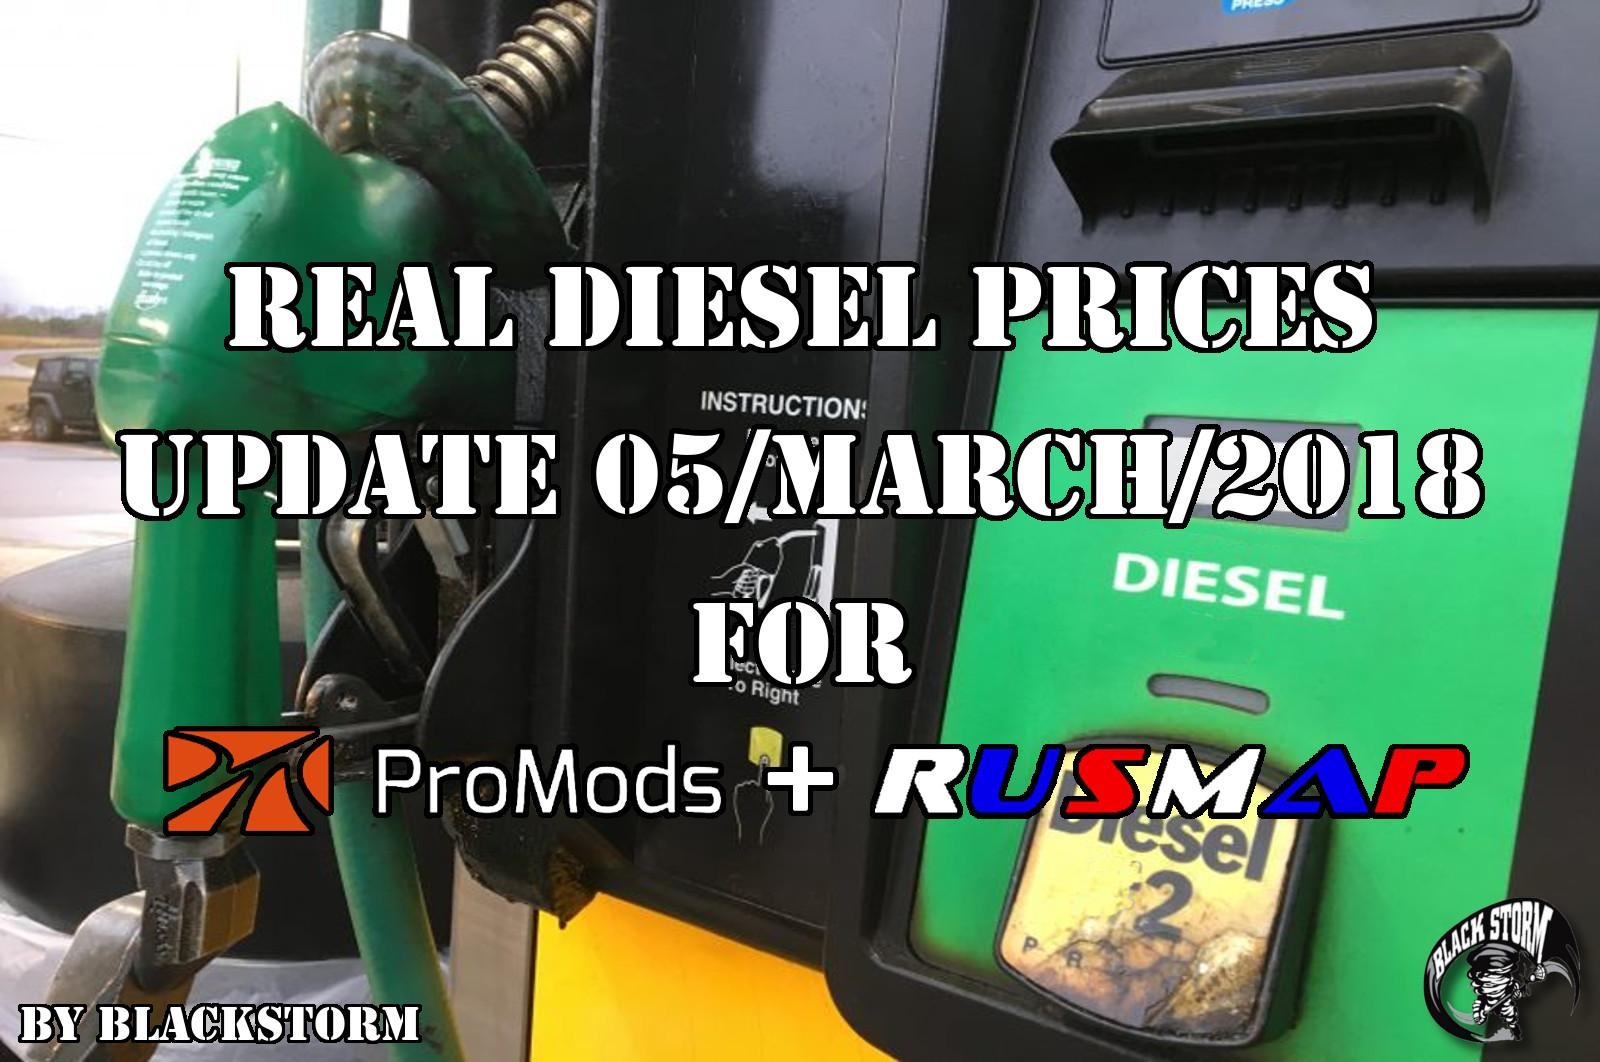 Real Diesel Prices Promods 2.26 & RusMap 1.8 (update 05-03-2018)